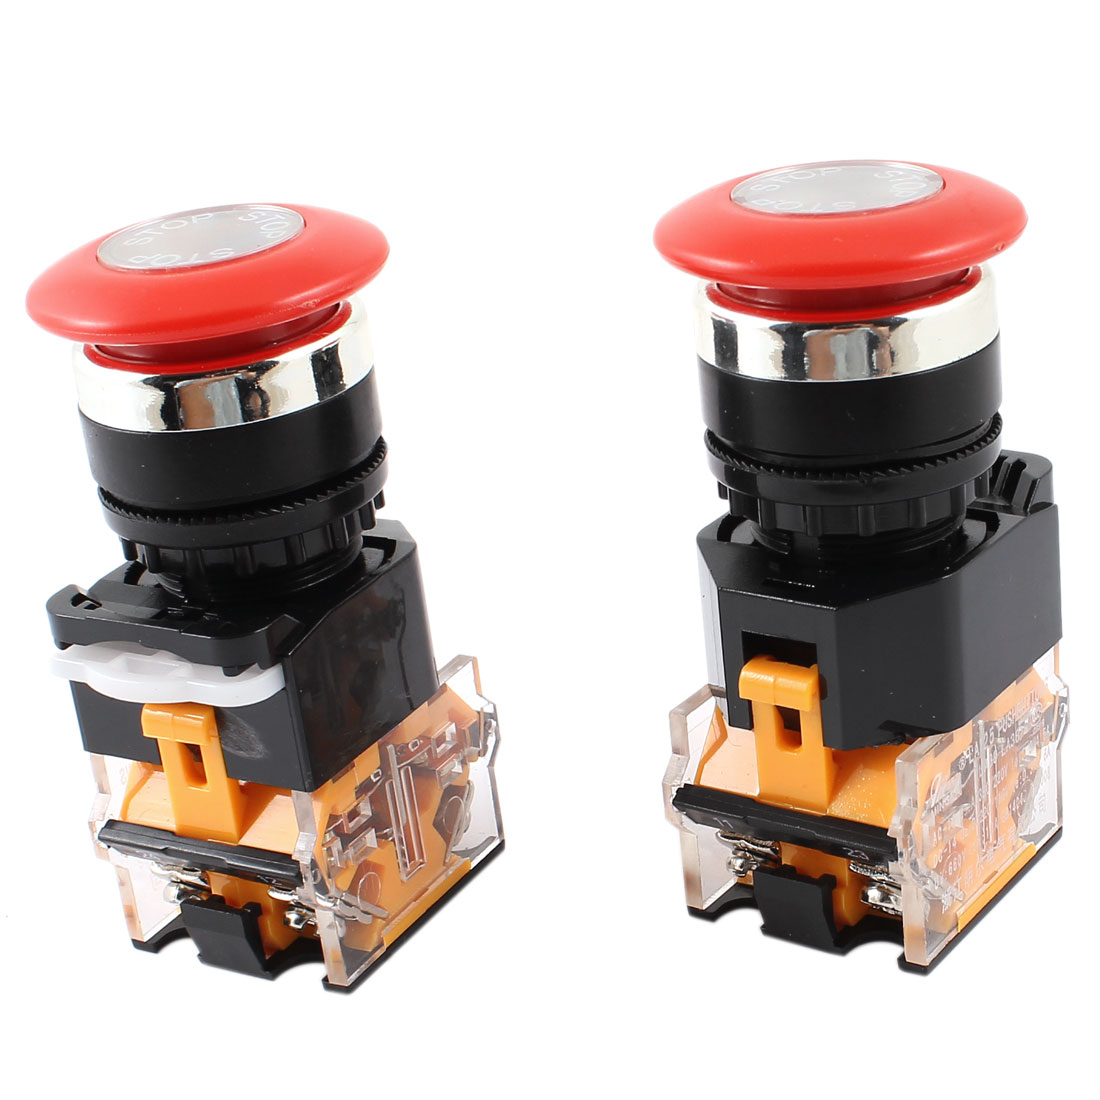 AC 660V 10A DPST Red Mushroom Cap 4 Screw Terminal Momentary Emergency Stop Switch 2Pcs